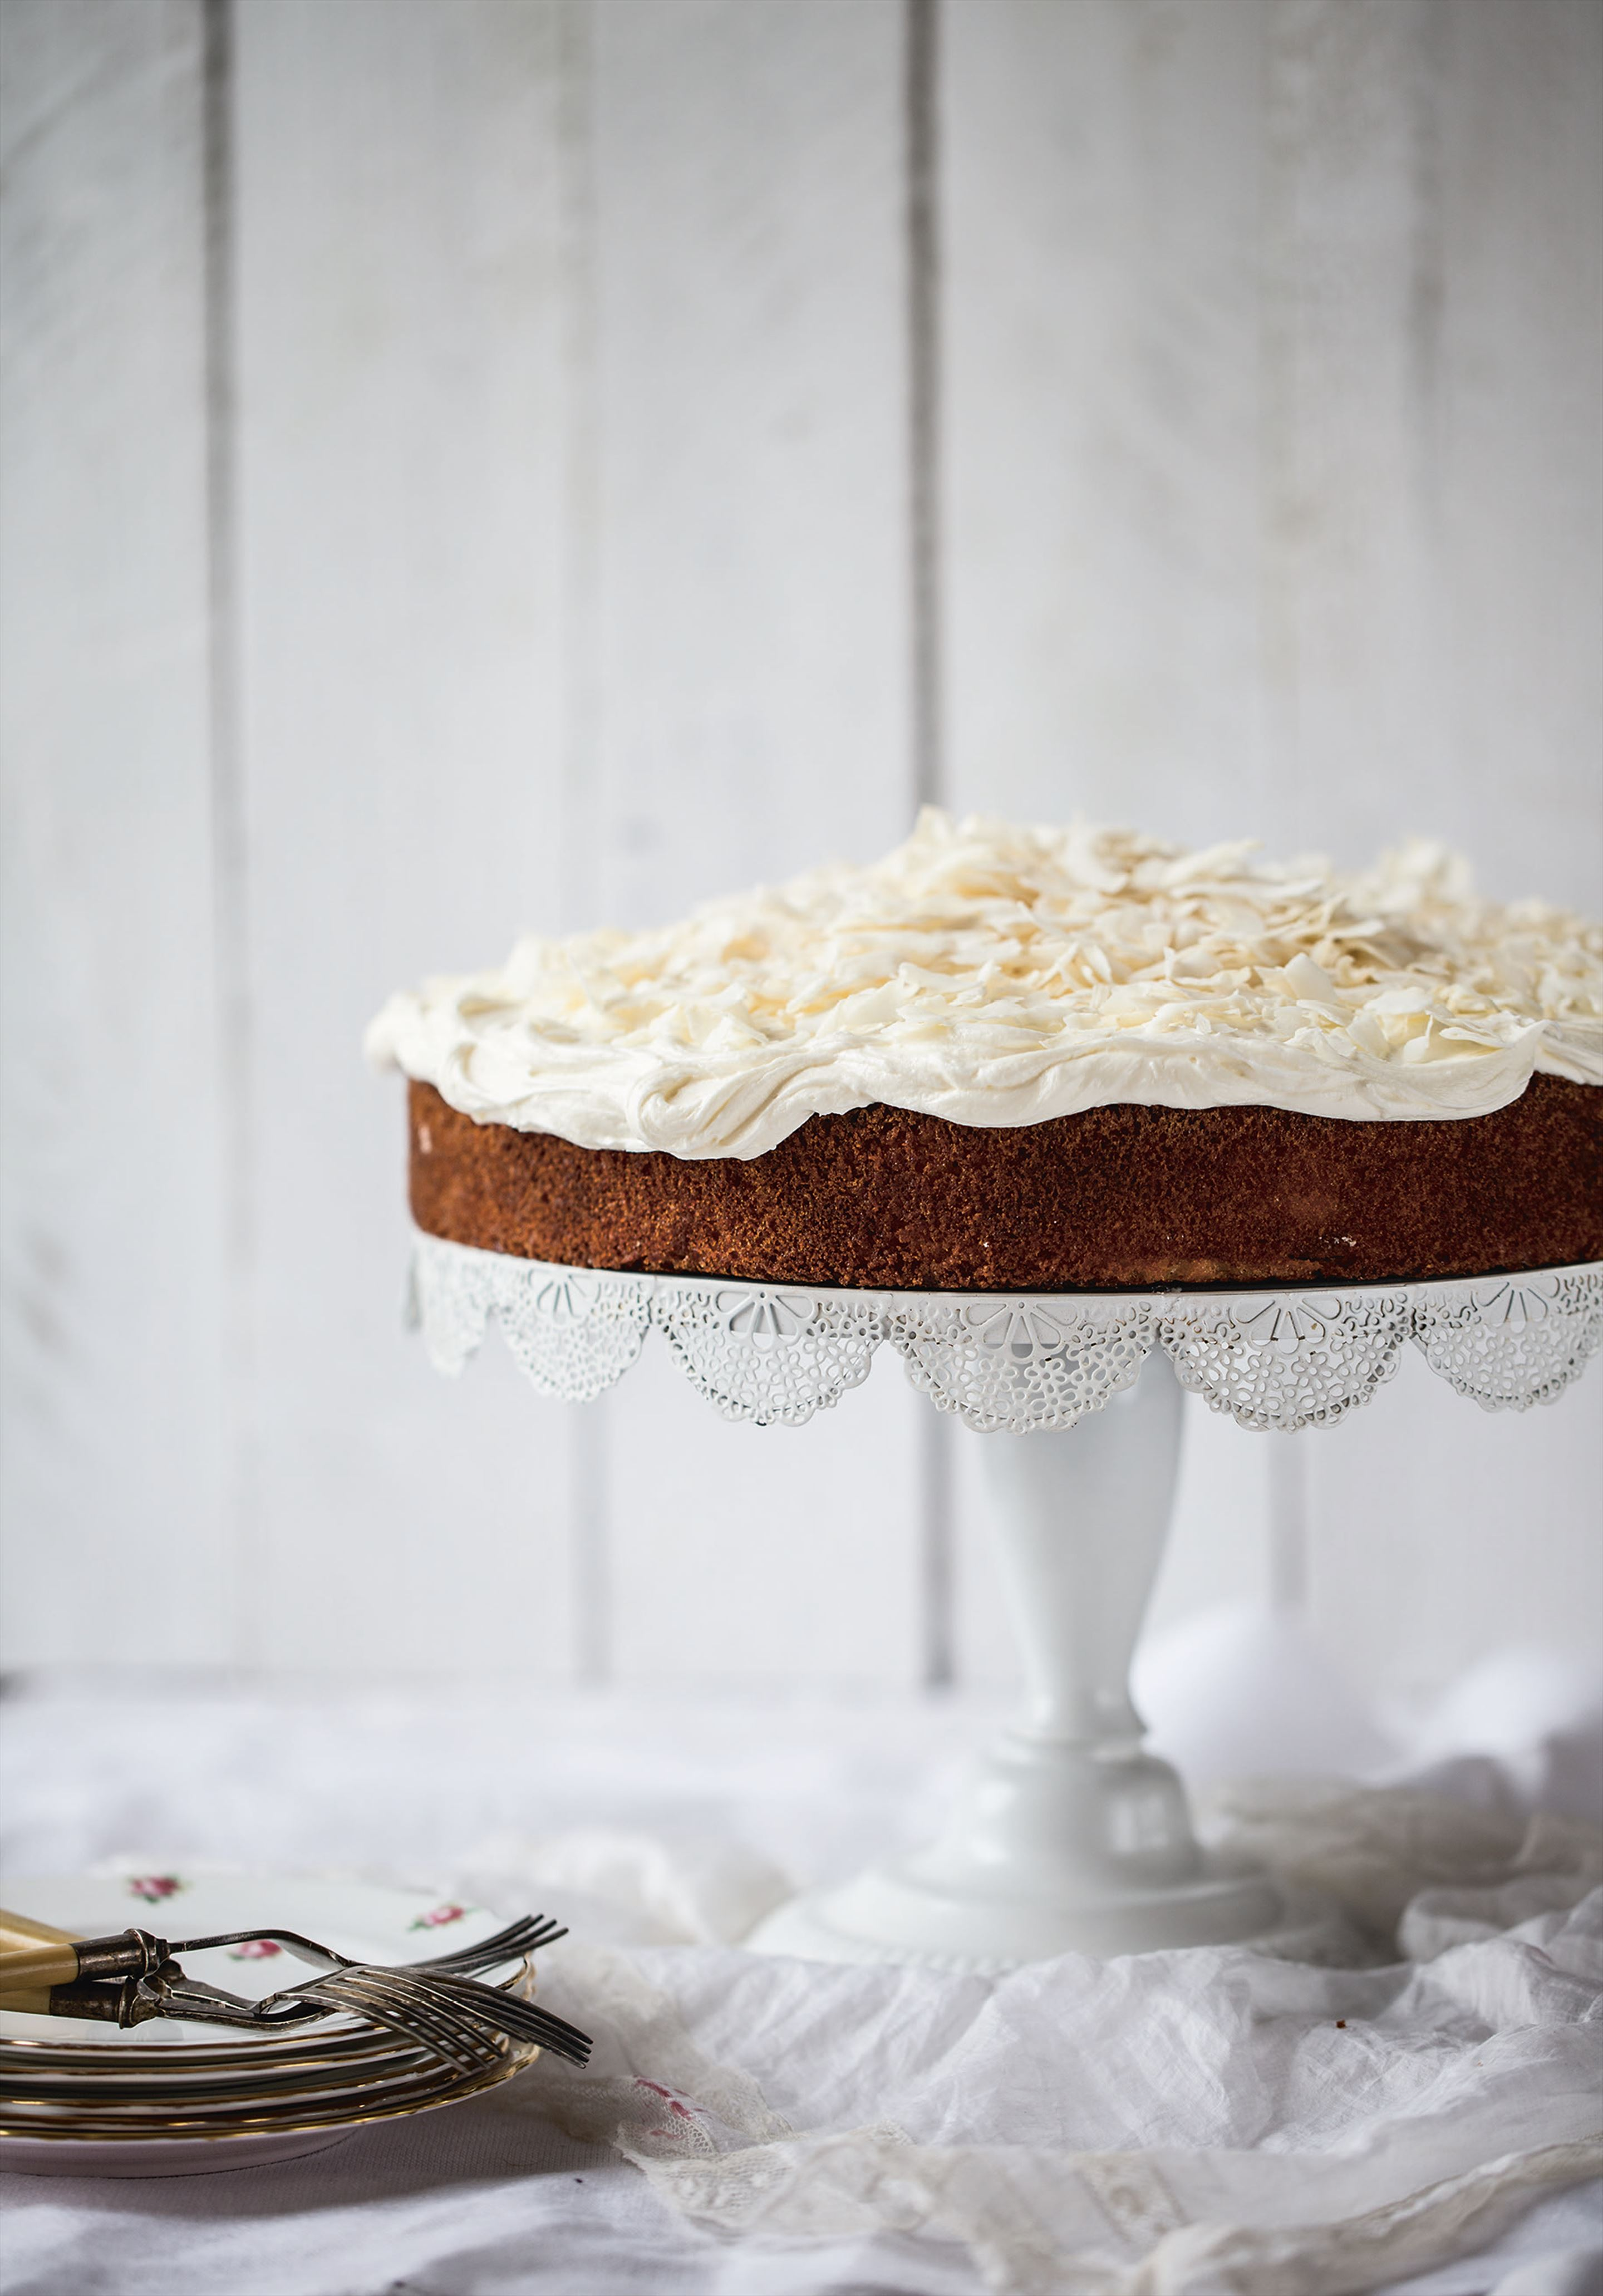 Apple, almond and coconut cake